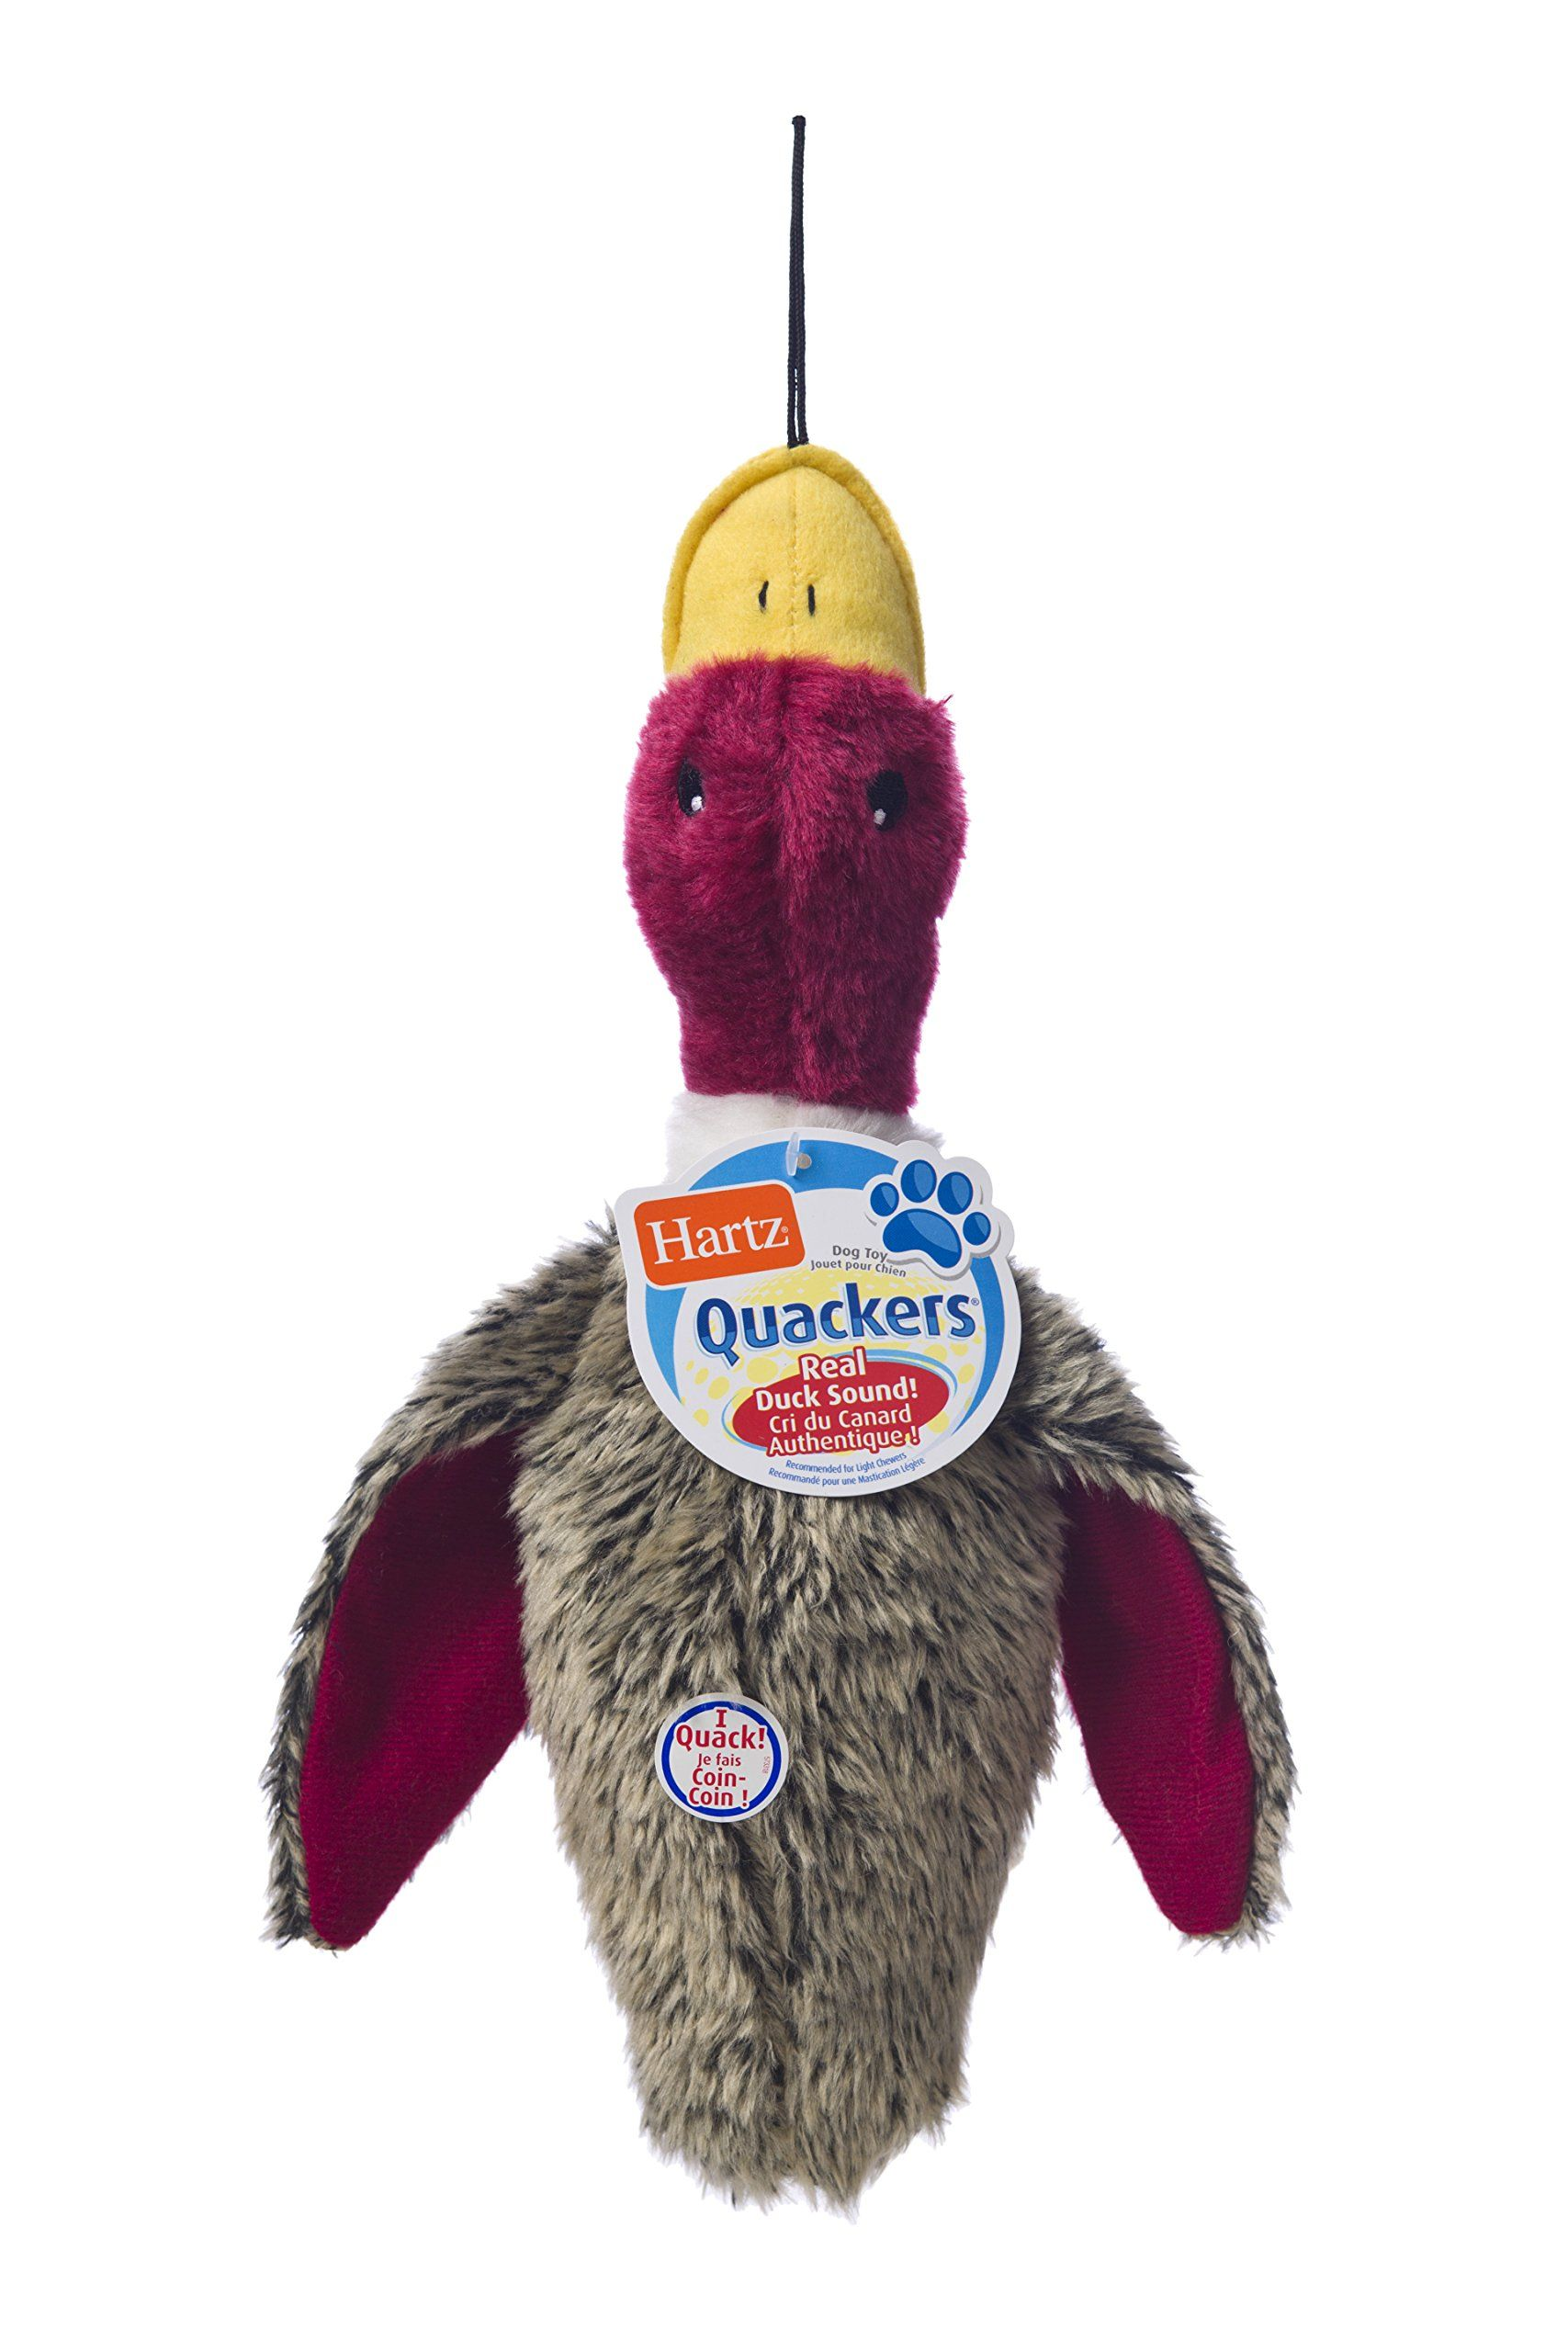 Hartz Quackers Plush Duck Dog Toy Colors Styles Vary Continue